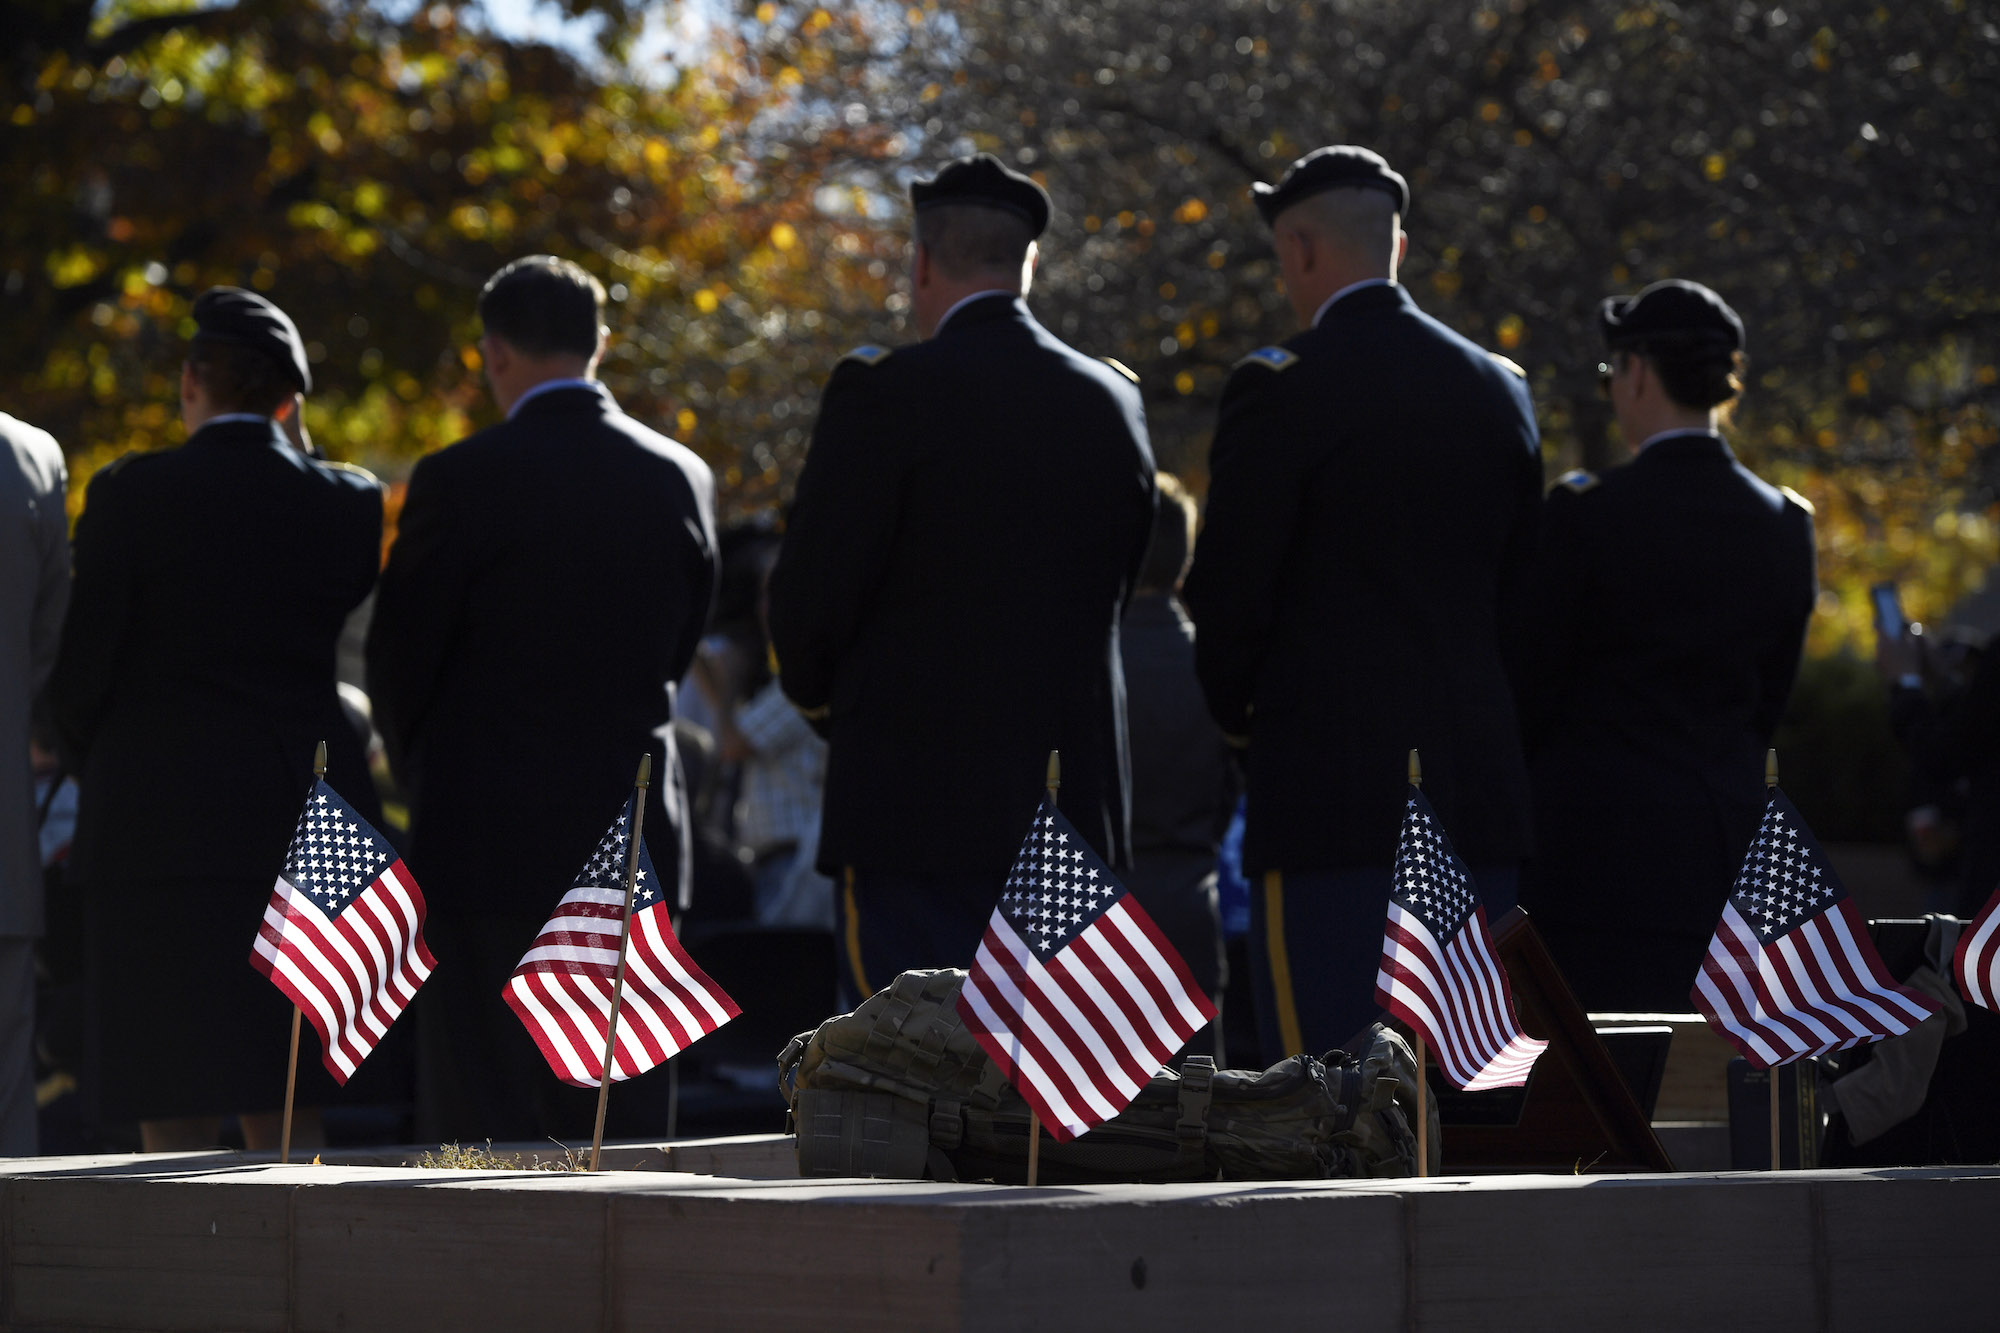 The Veterans Day parade on November 12th at Lincoln Park in Denver, CO. The U.S. Departments of Education, Defense and Veterans' Affairs created a partnership to help transition veterans back into civilian life. (Andy Cross/AP Exchange)